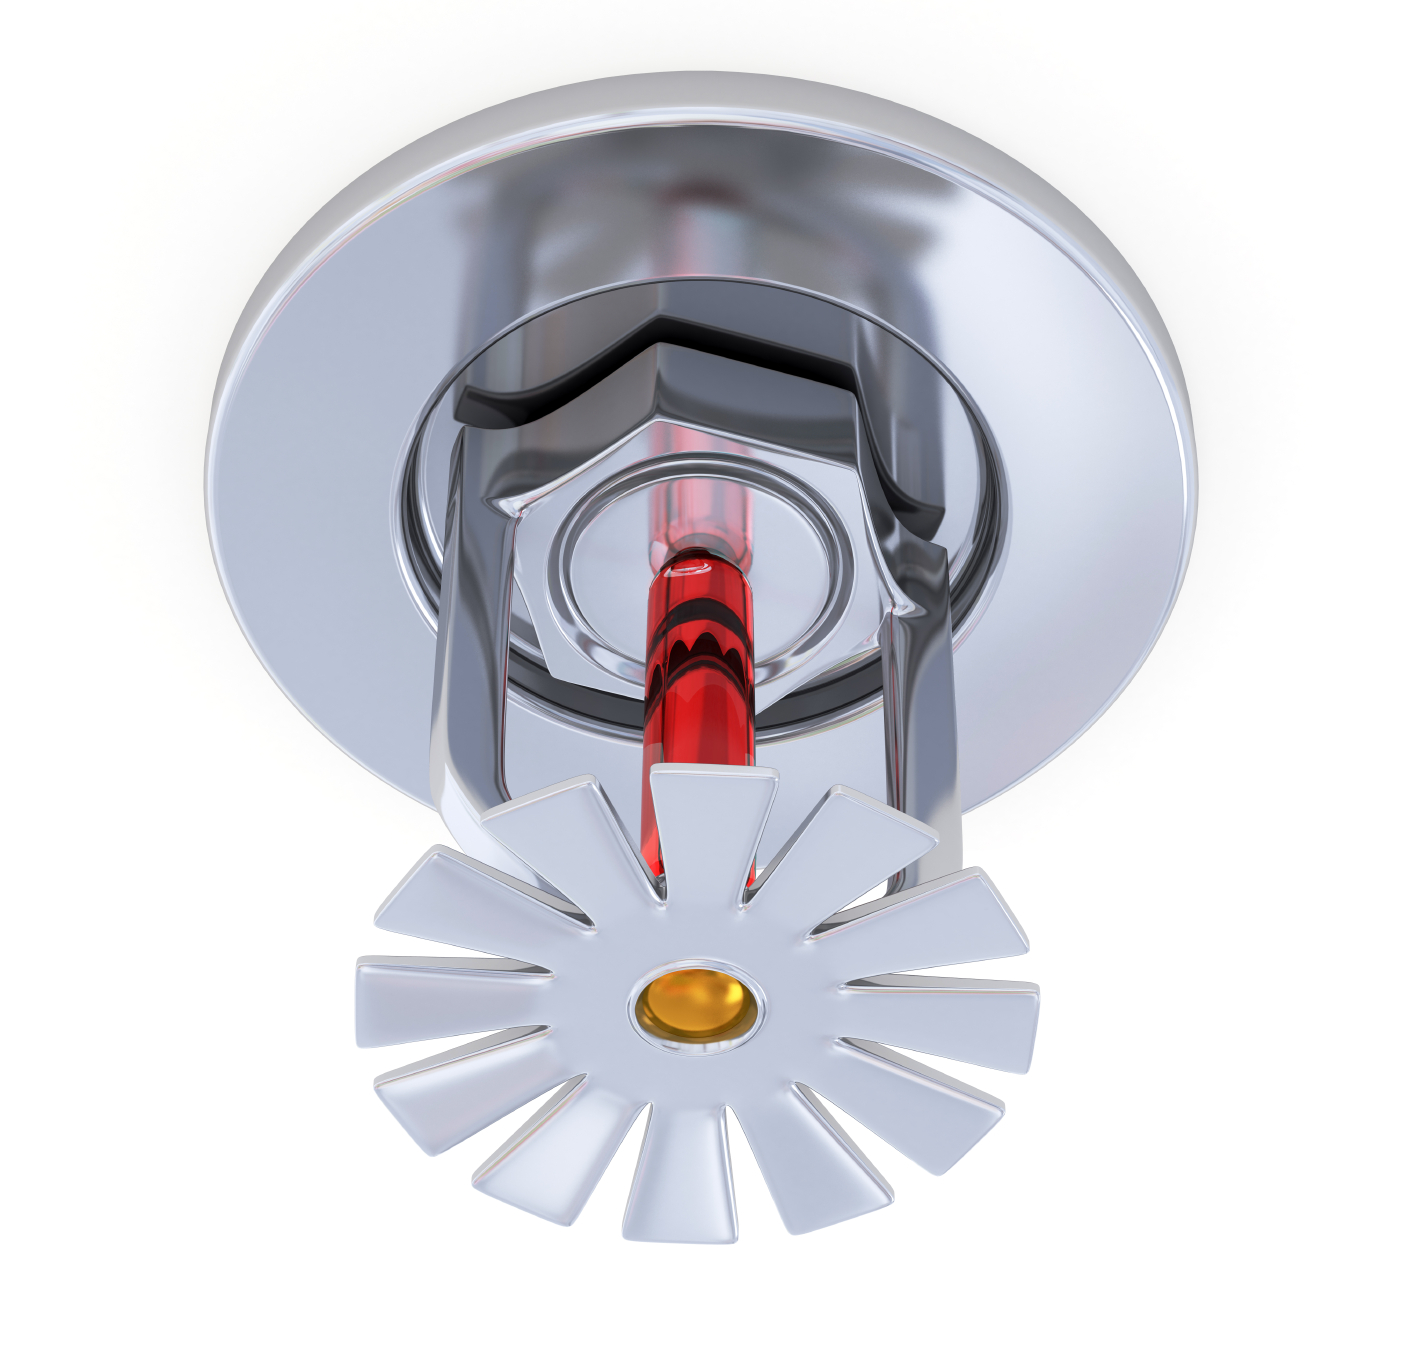 Shower And Eyewash further  in addition  moreover General Electric Logo Photos as well Blog. on fire alarm systems parts